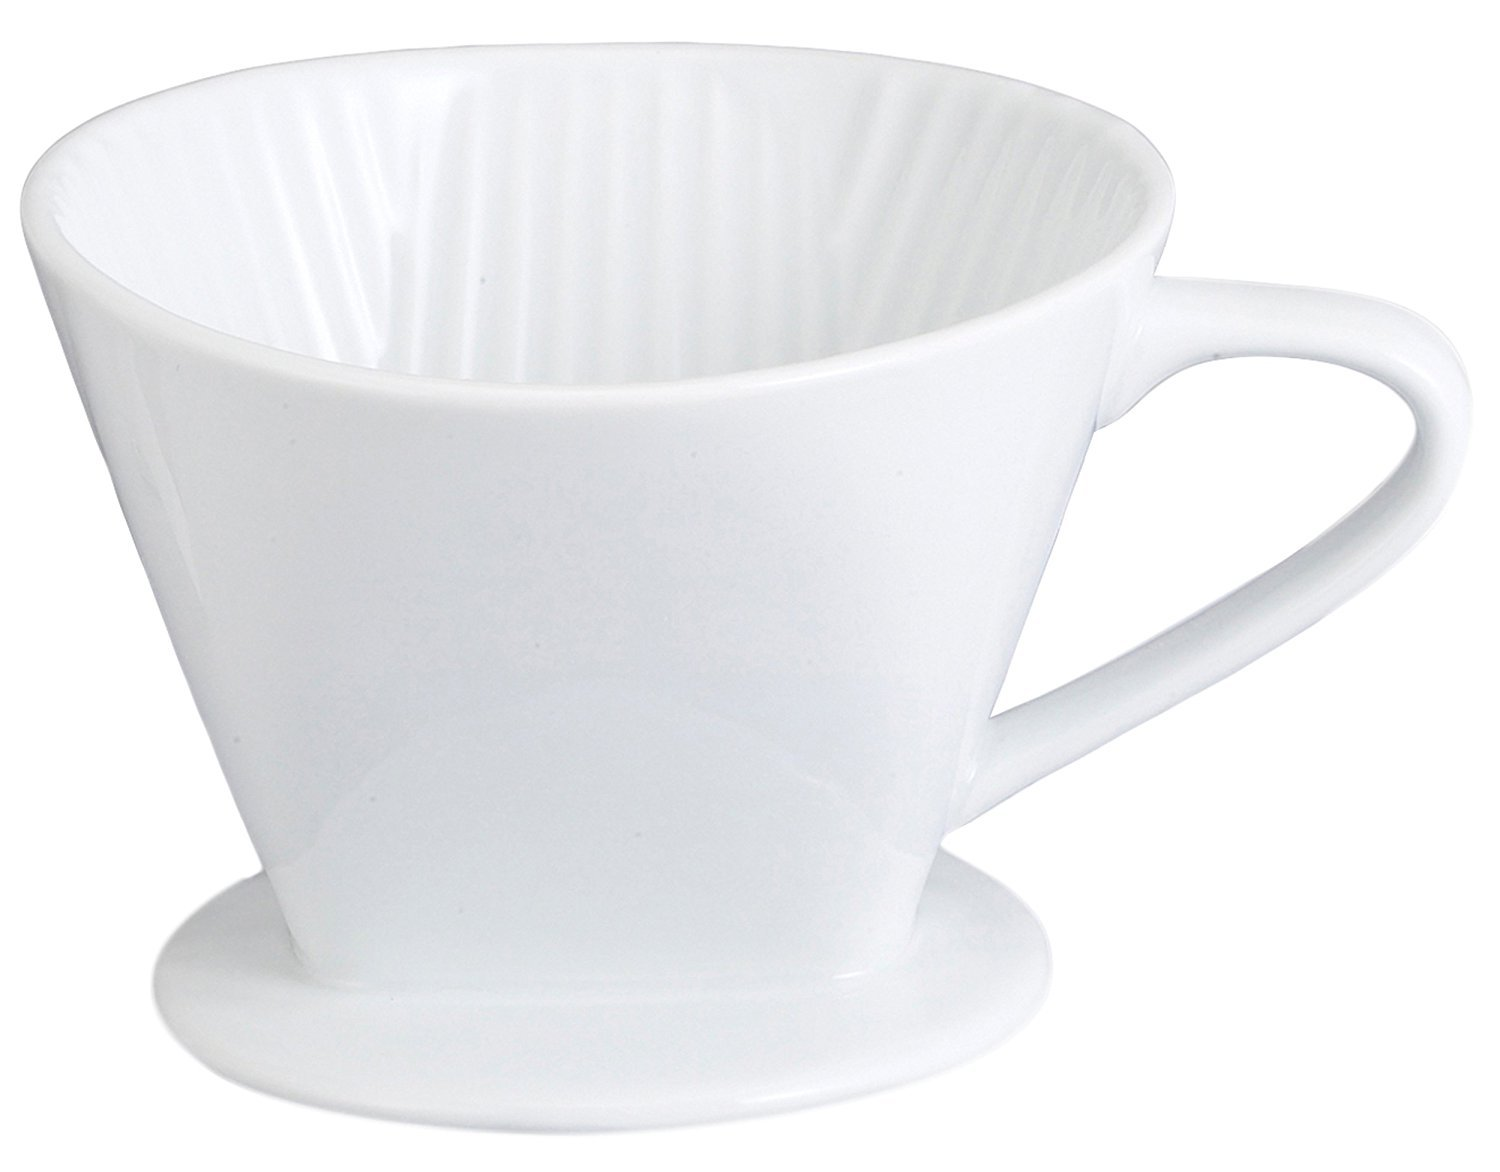 HIC Harold Import Co. NT1052 coffee filter cone No.4 White